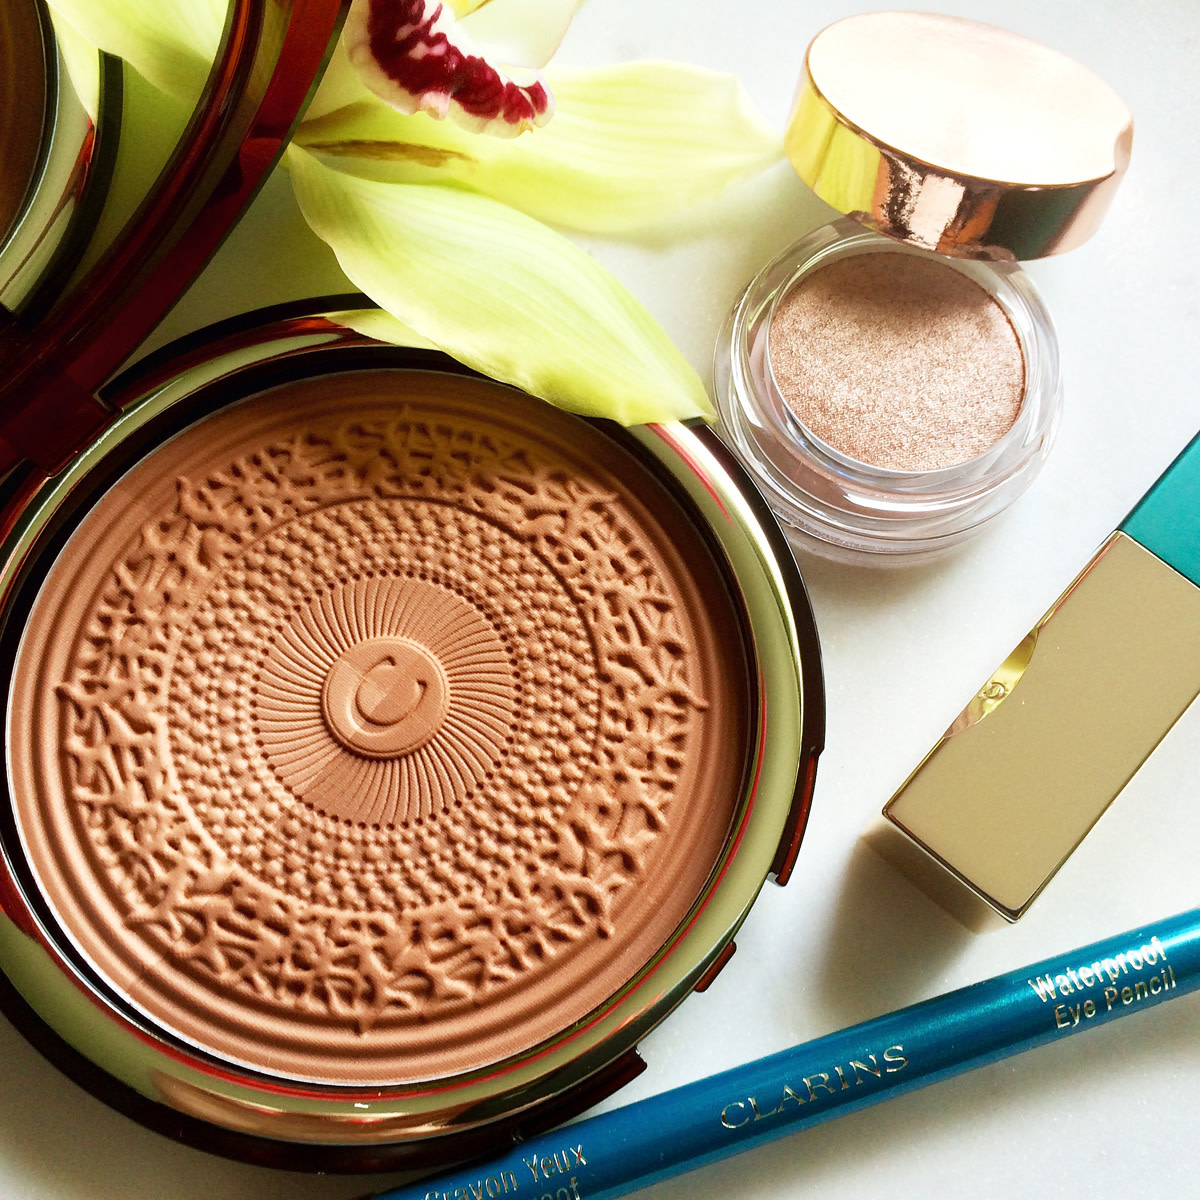 Clarins Summer 2015 Aquatic Treasures makeup